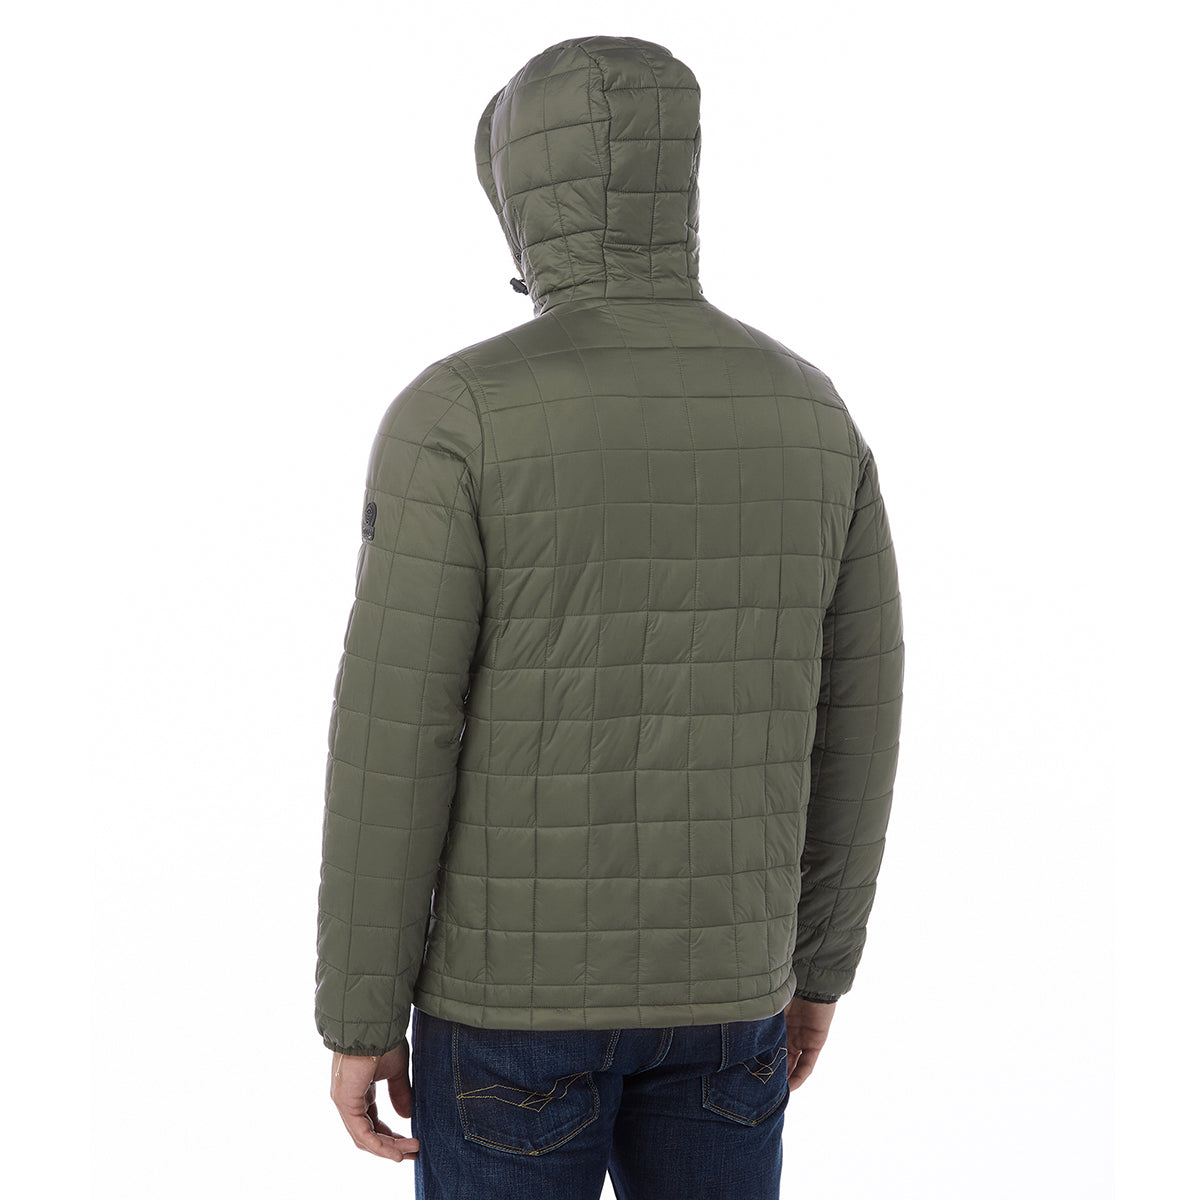 Loxley Mens TCZ Thermal Jacket - Dark Khaki image 4